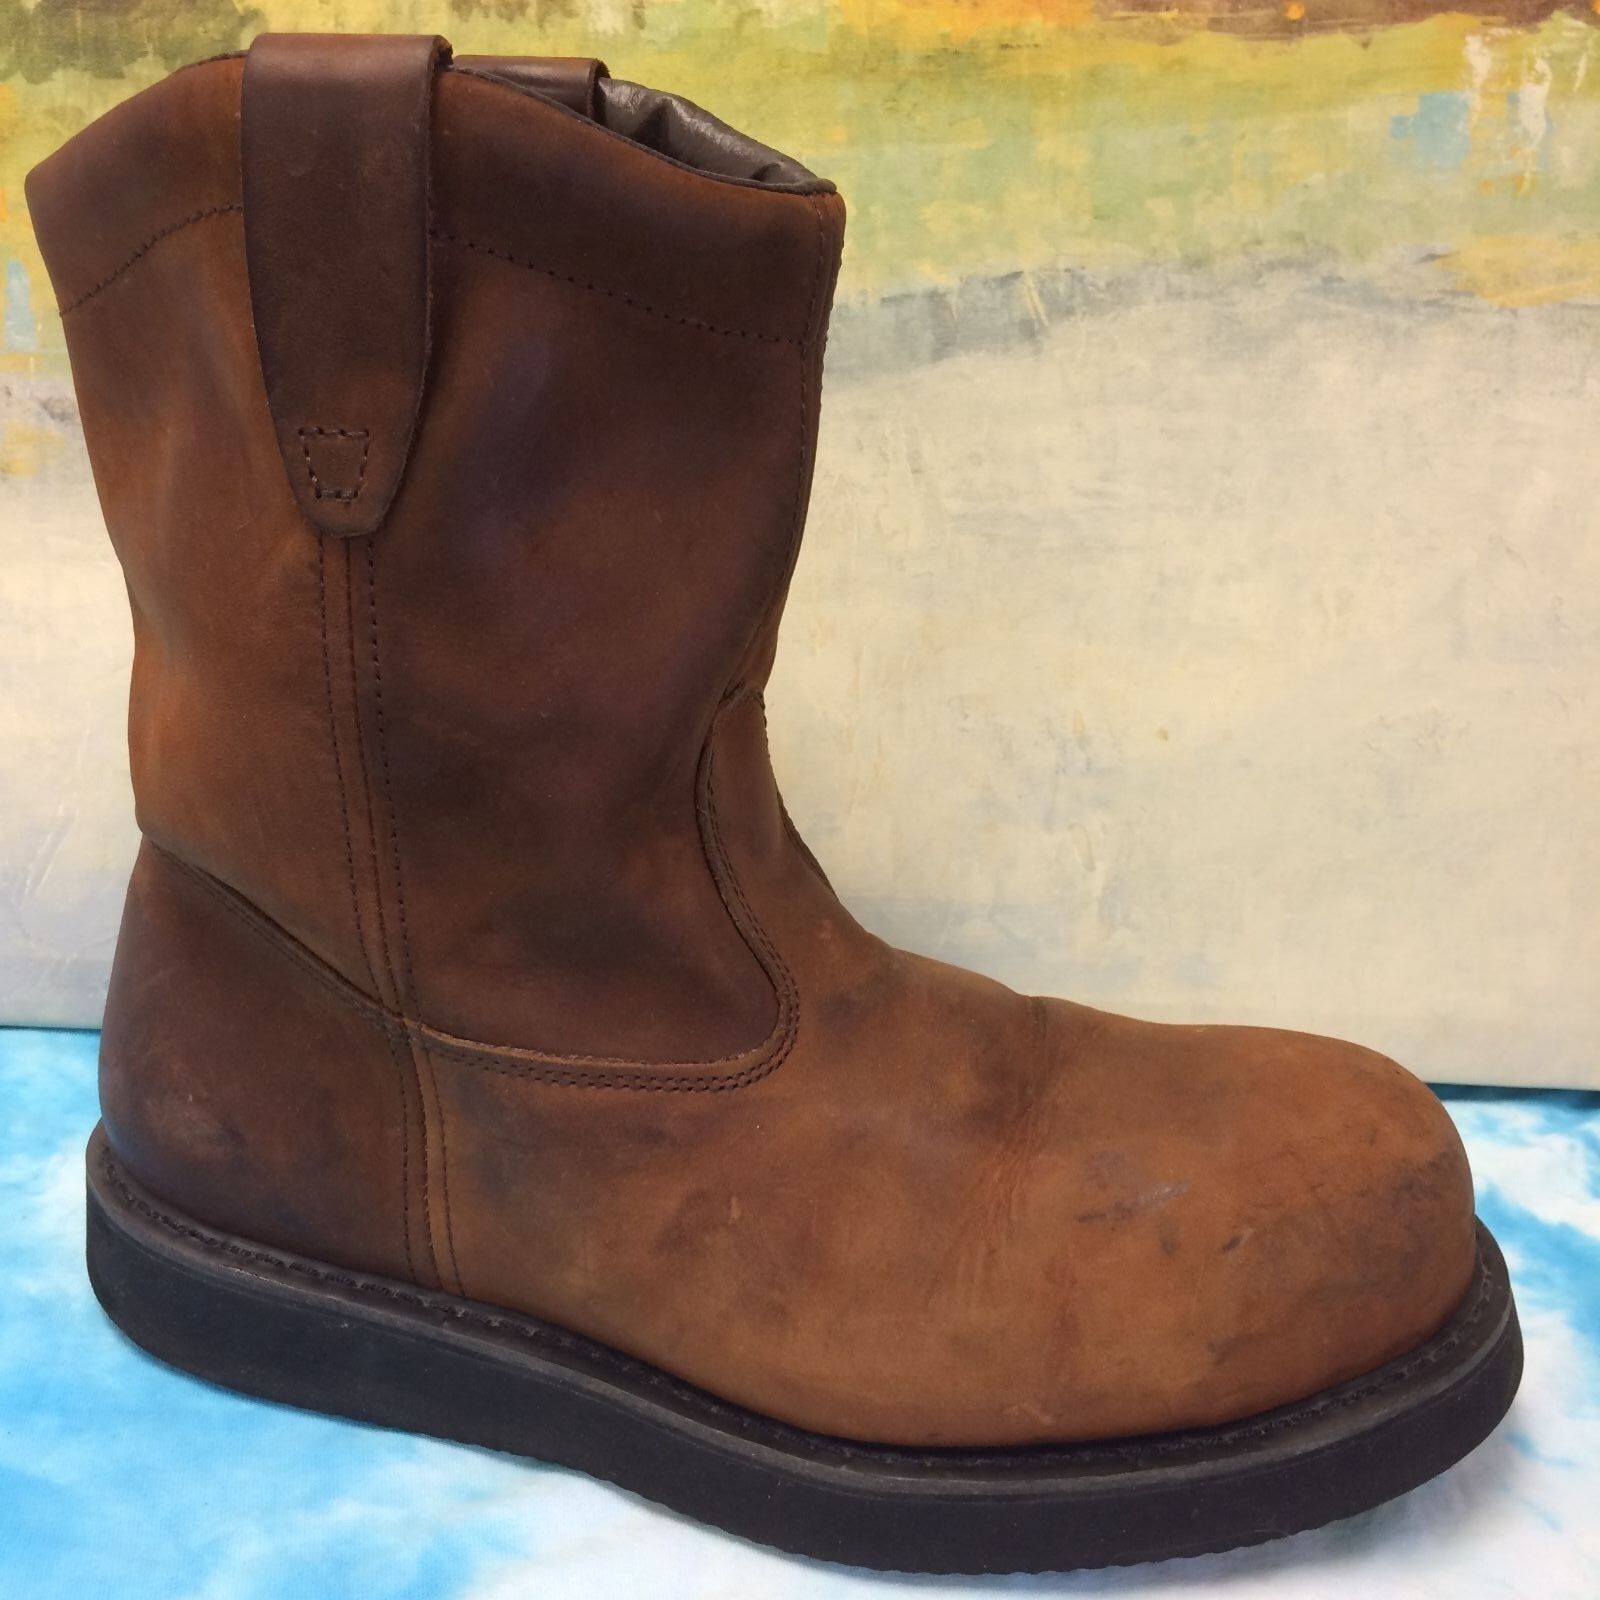 BRAHAMA MENS BOOTS SIZE 12W BROWN STEEL TOE LEATHER AND leather upper USED